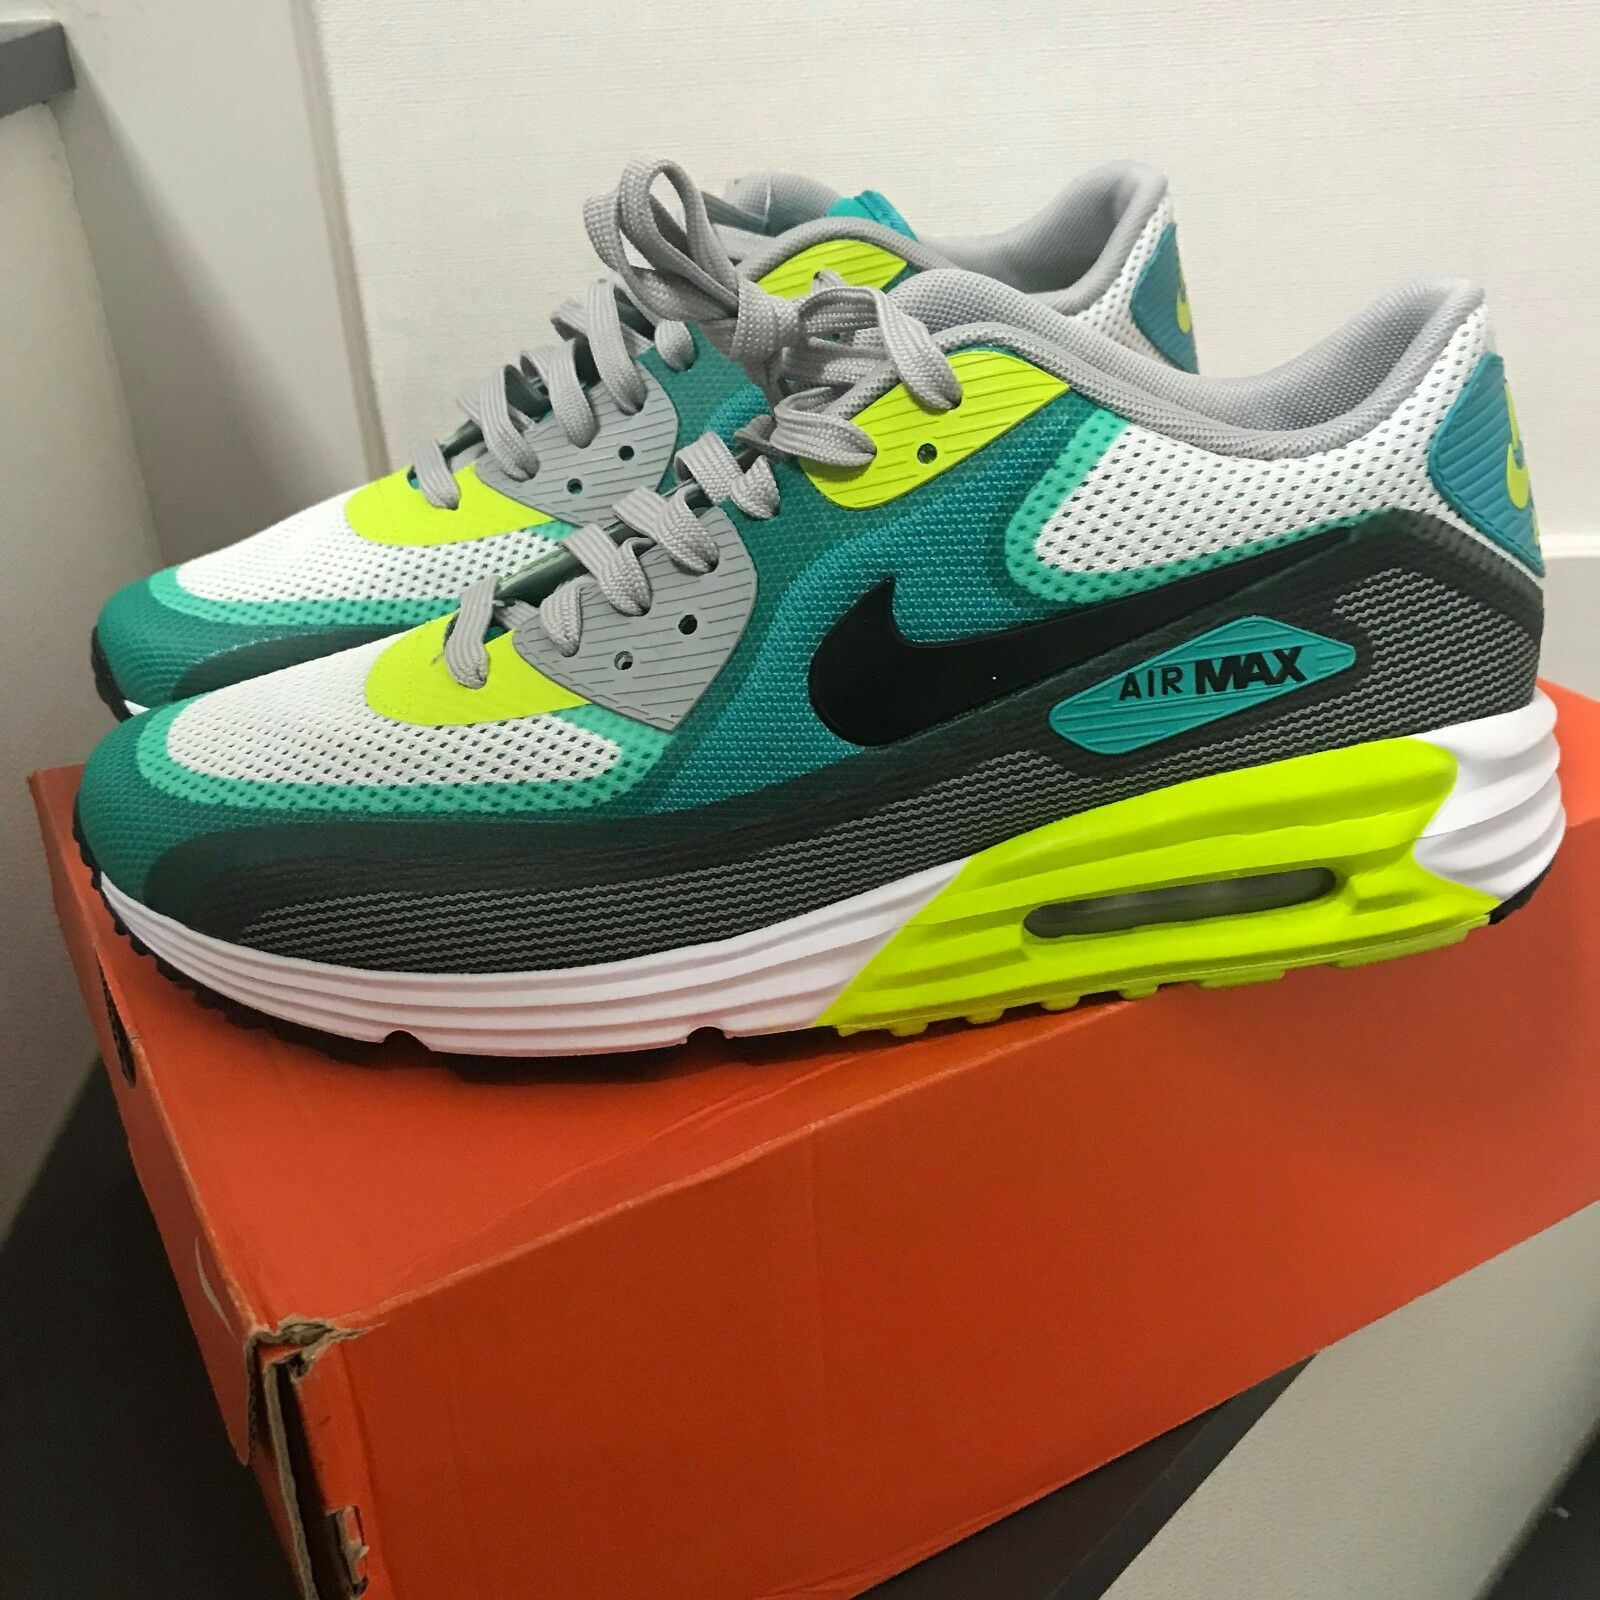 Nike AIR MAX LUNAR90 C3.0 Sneakers shoes 631744-103 Man's Size 10